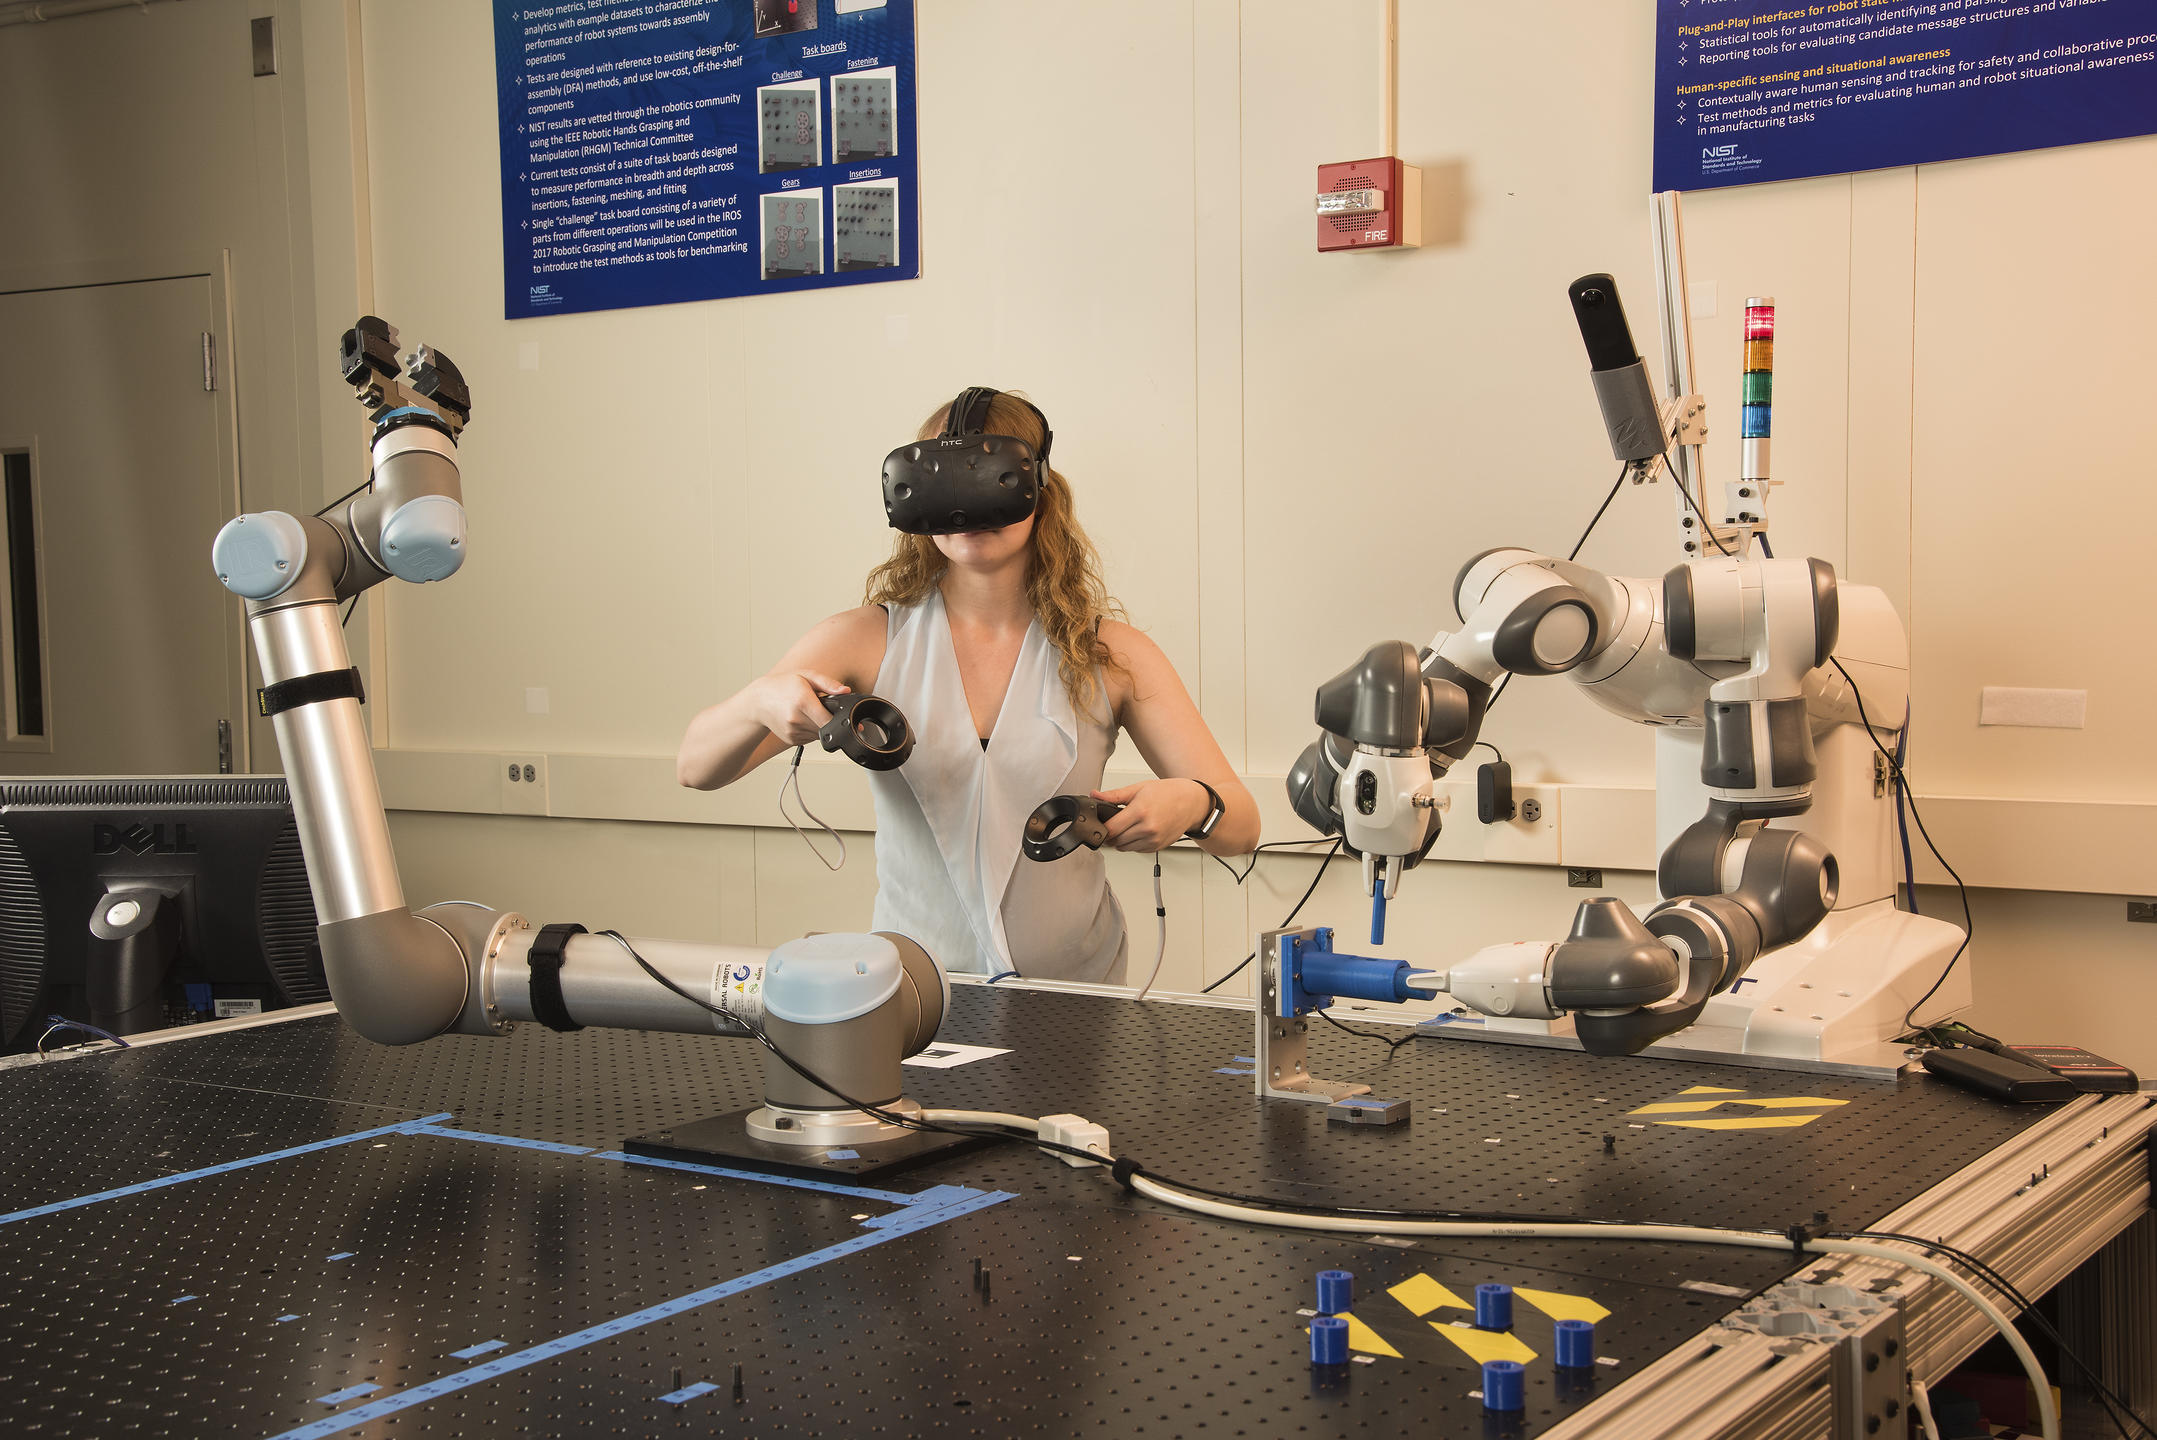 Researcher Megan Zimmerman wearing a virtual reality headset and handheld devices to control 2-handed tasks of a robot